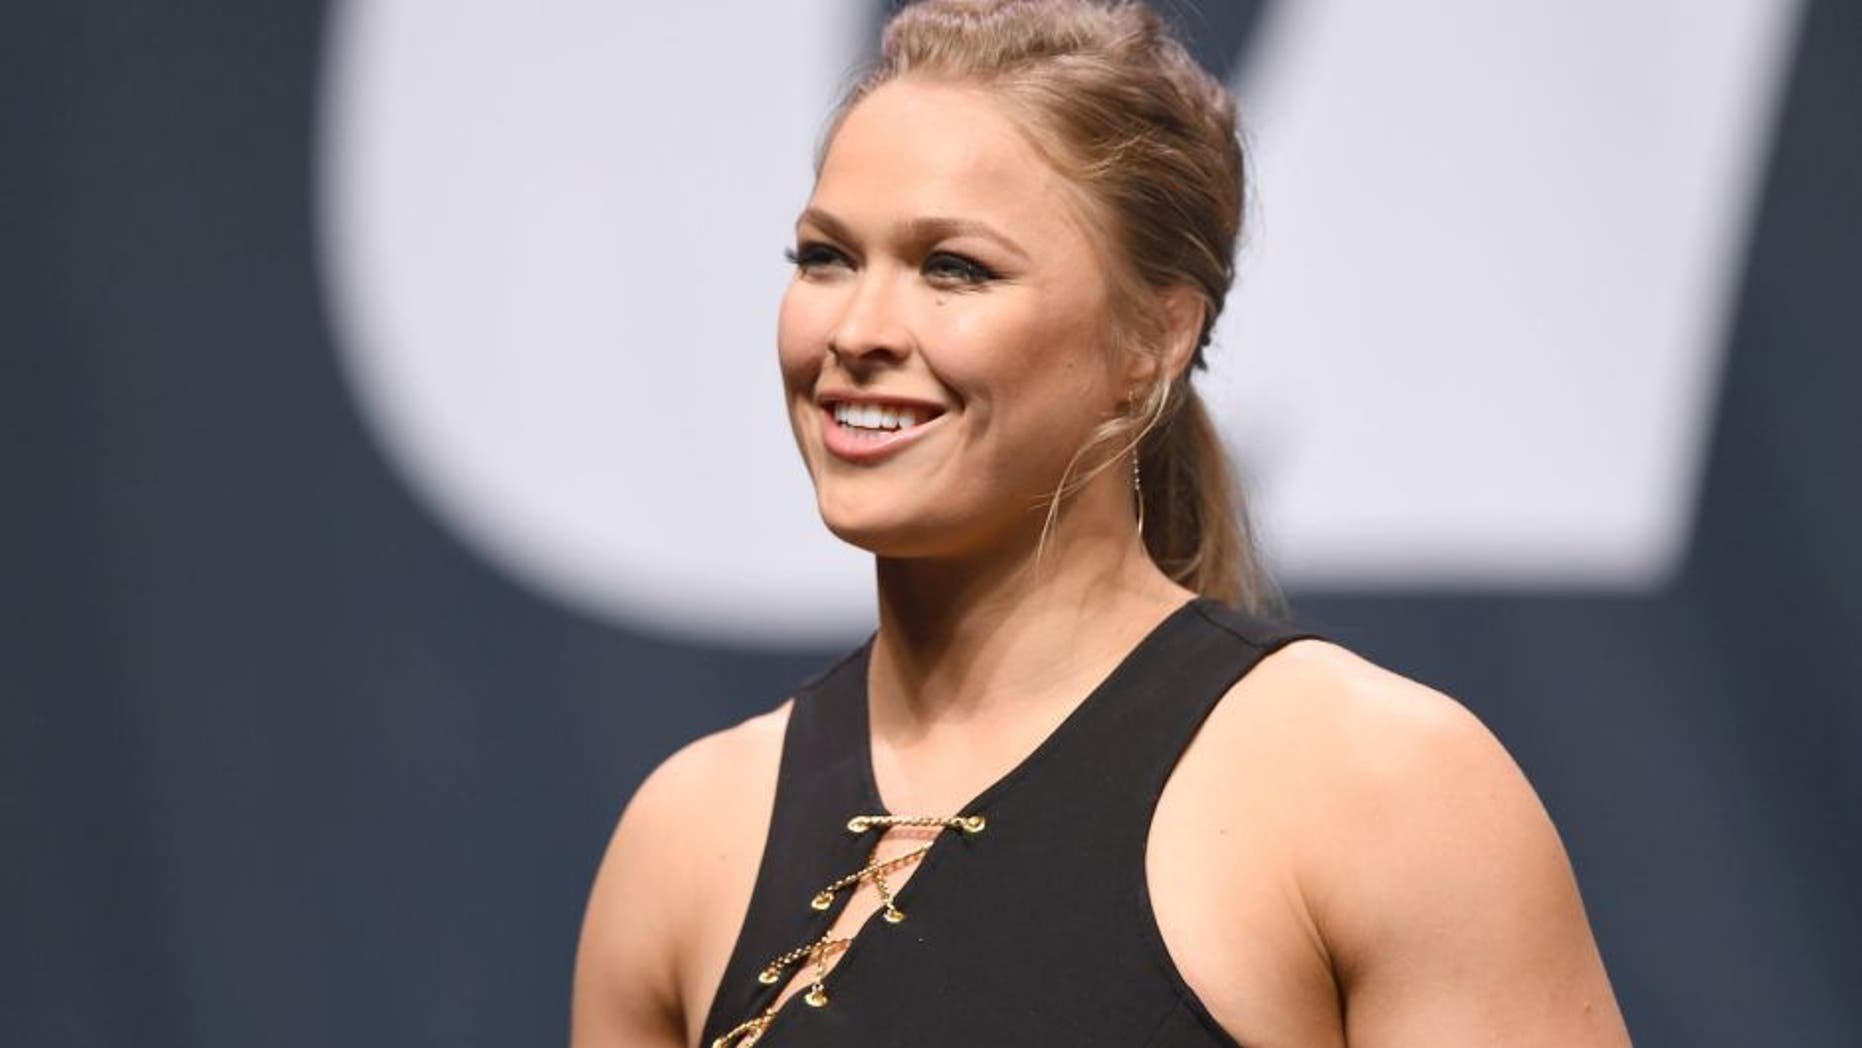 LAS VEGAS, NV - SEPTEMBER 04: UFC women's bantamweight champion Ronda Rousey speaks to the fans during the UFC's Go Big launch event inside MGM Grand Garden Arena on September 4, 2015 in Las Vegas, Nevada. (Photo by Josh Hedges/Zuffa LLC/Zuffa LLC via Getty Images)